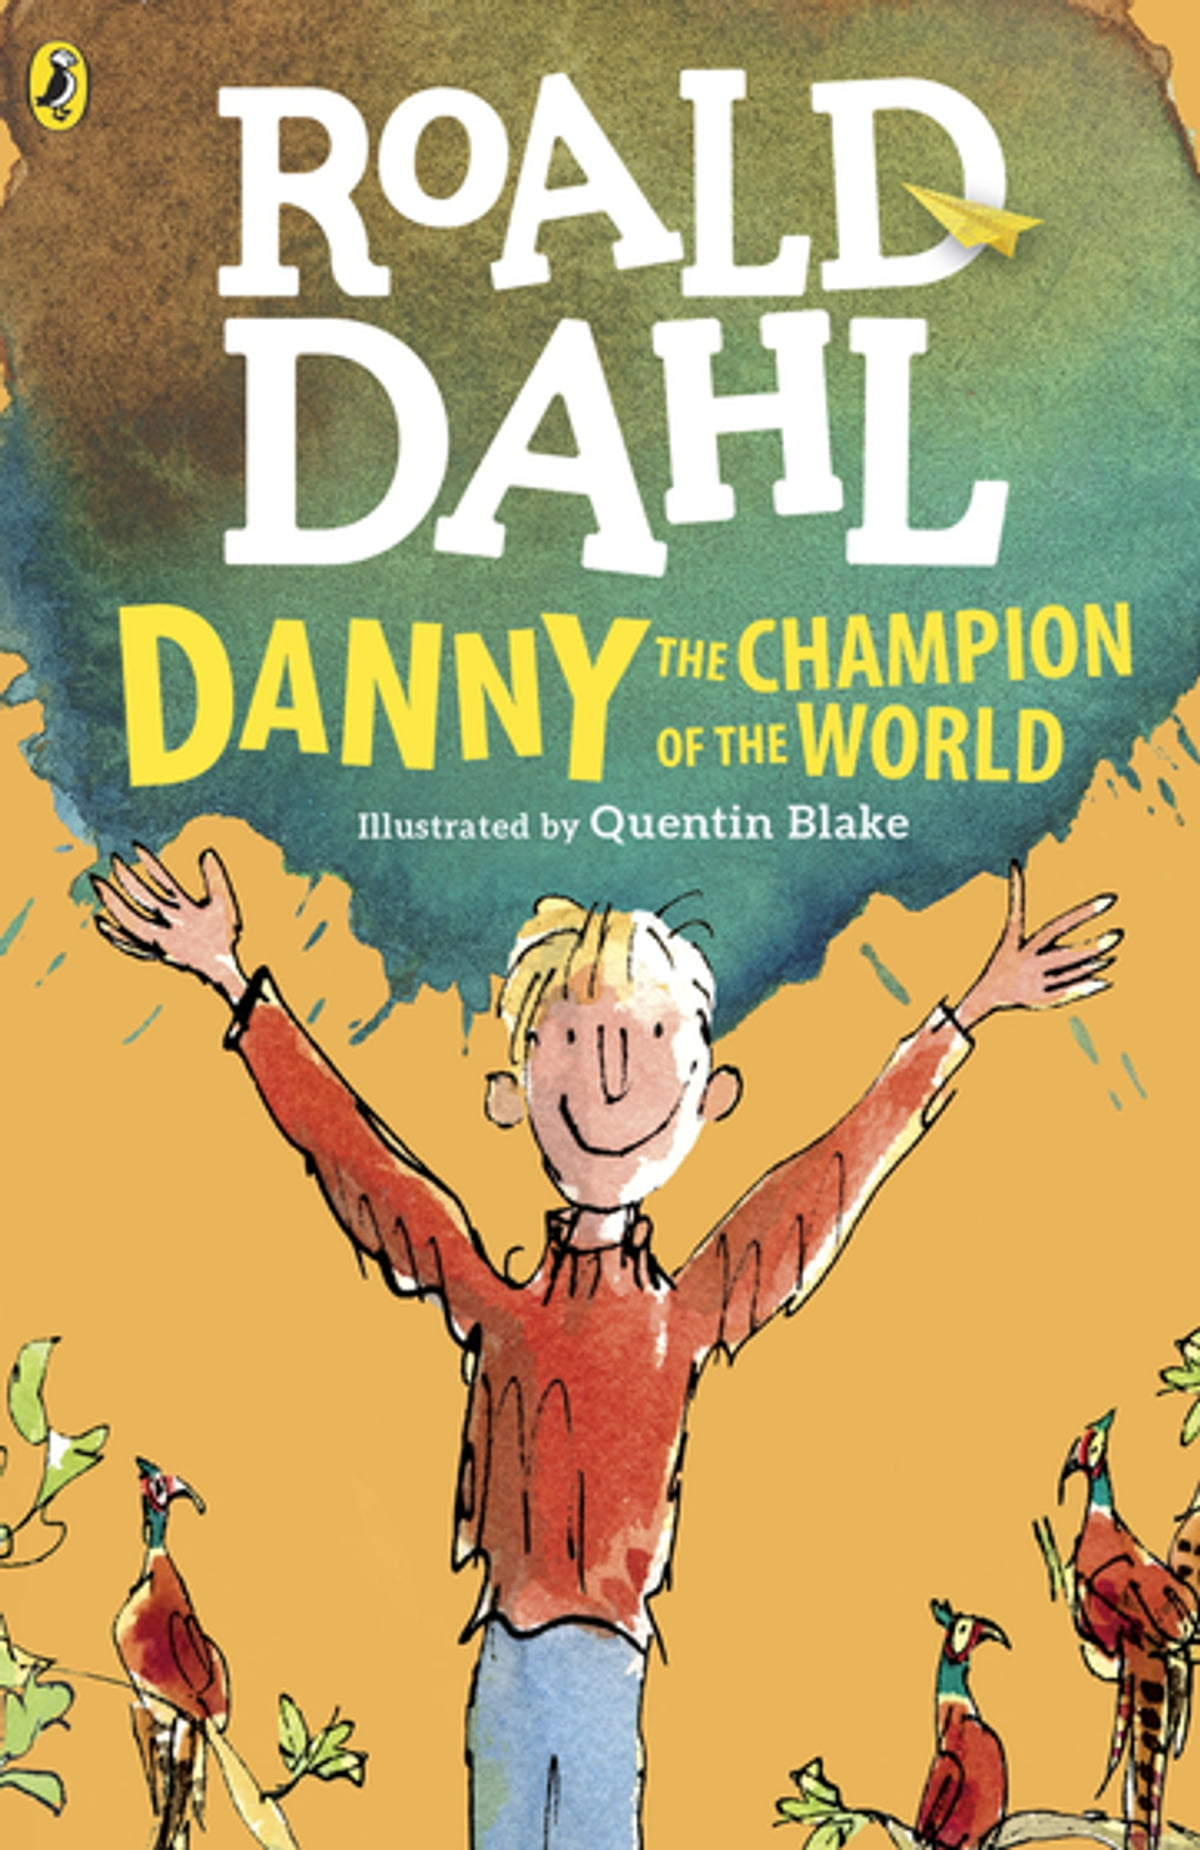 Danny the Champion of the World eBook by Roald Dahl | Rakuten Kobo